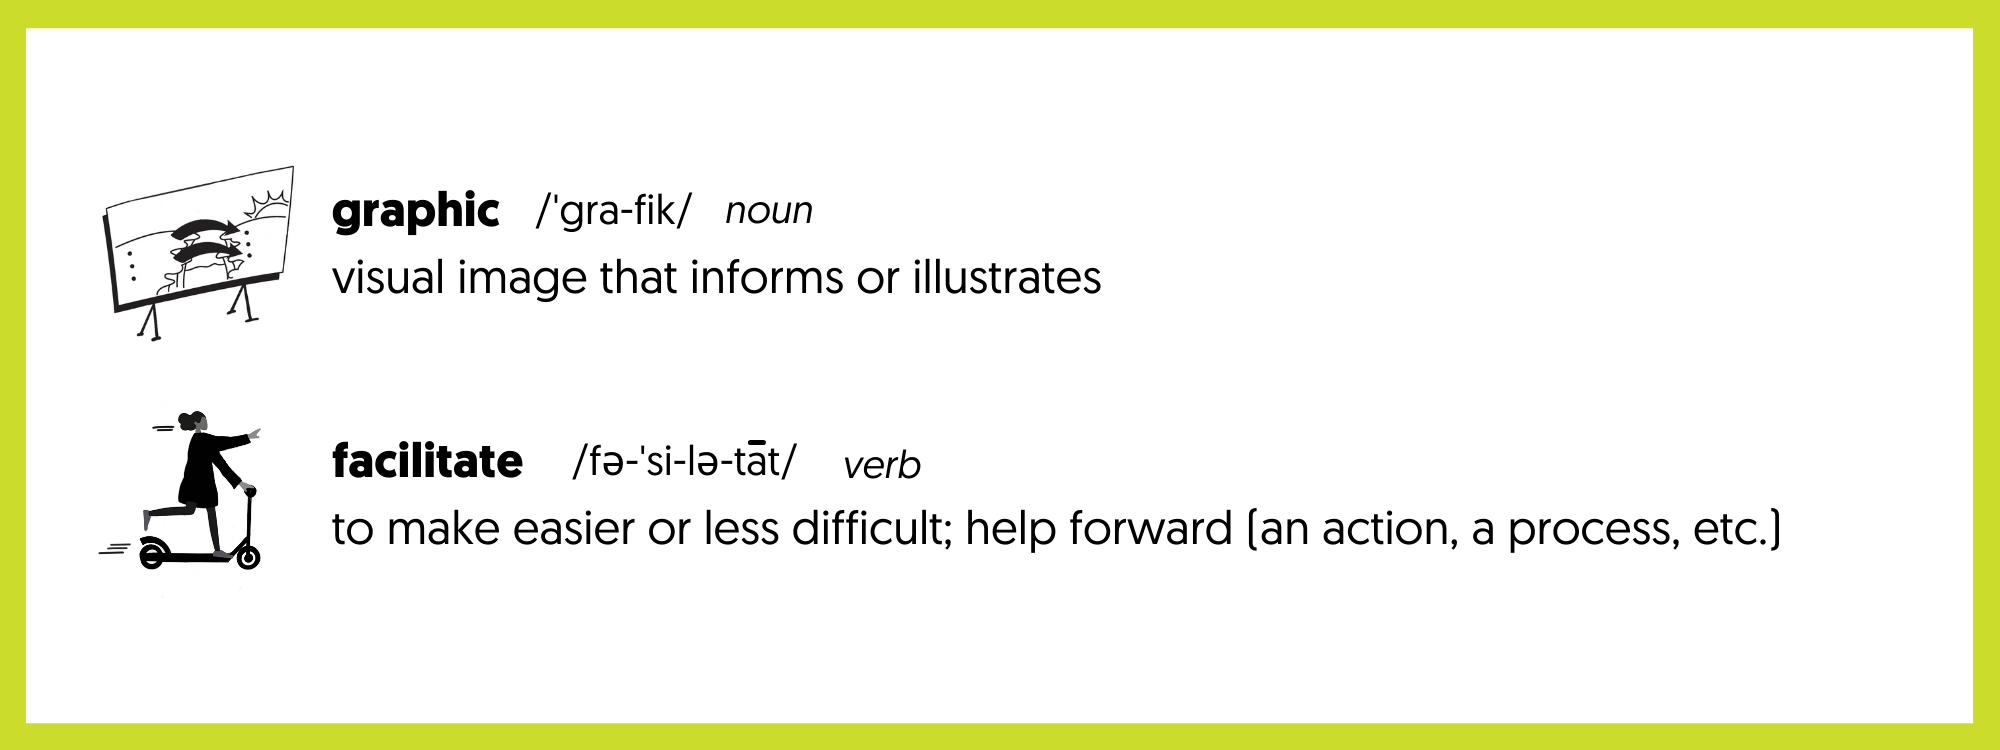 graphic facilitation definition relating to visual art, especially involving drawing, engraving, or letter. To make easier or less difficult; help forward a process